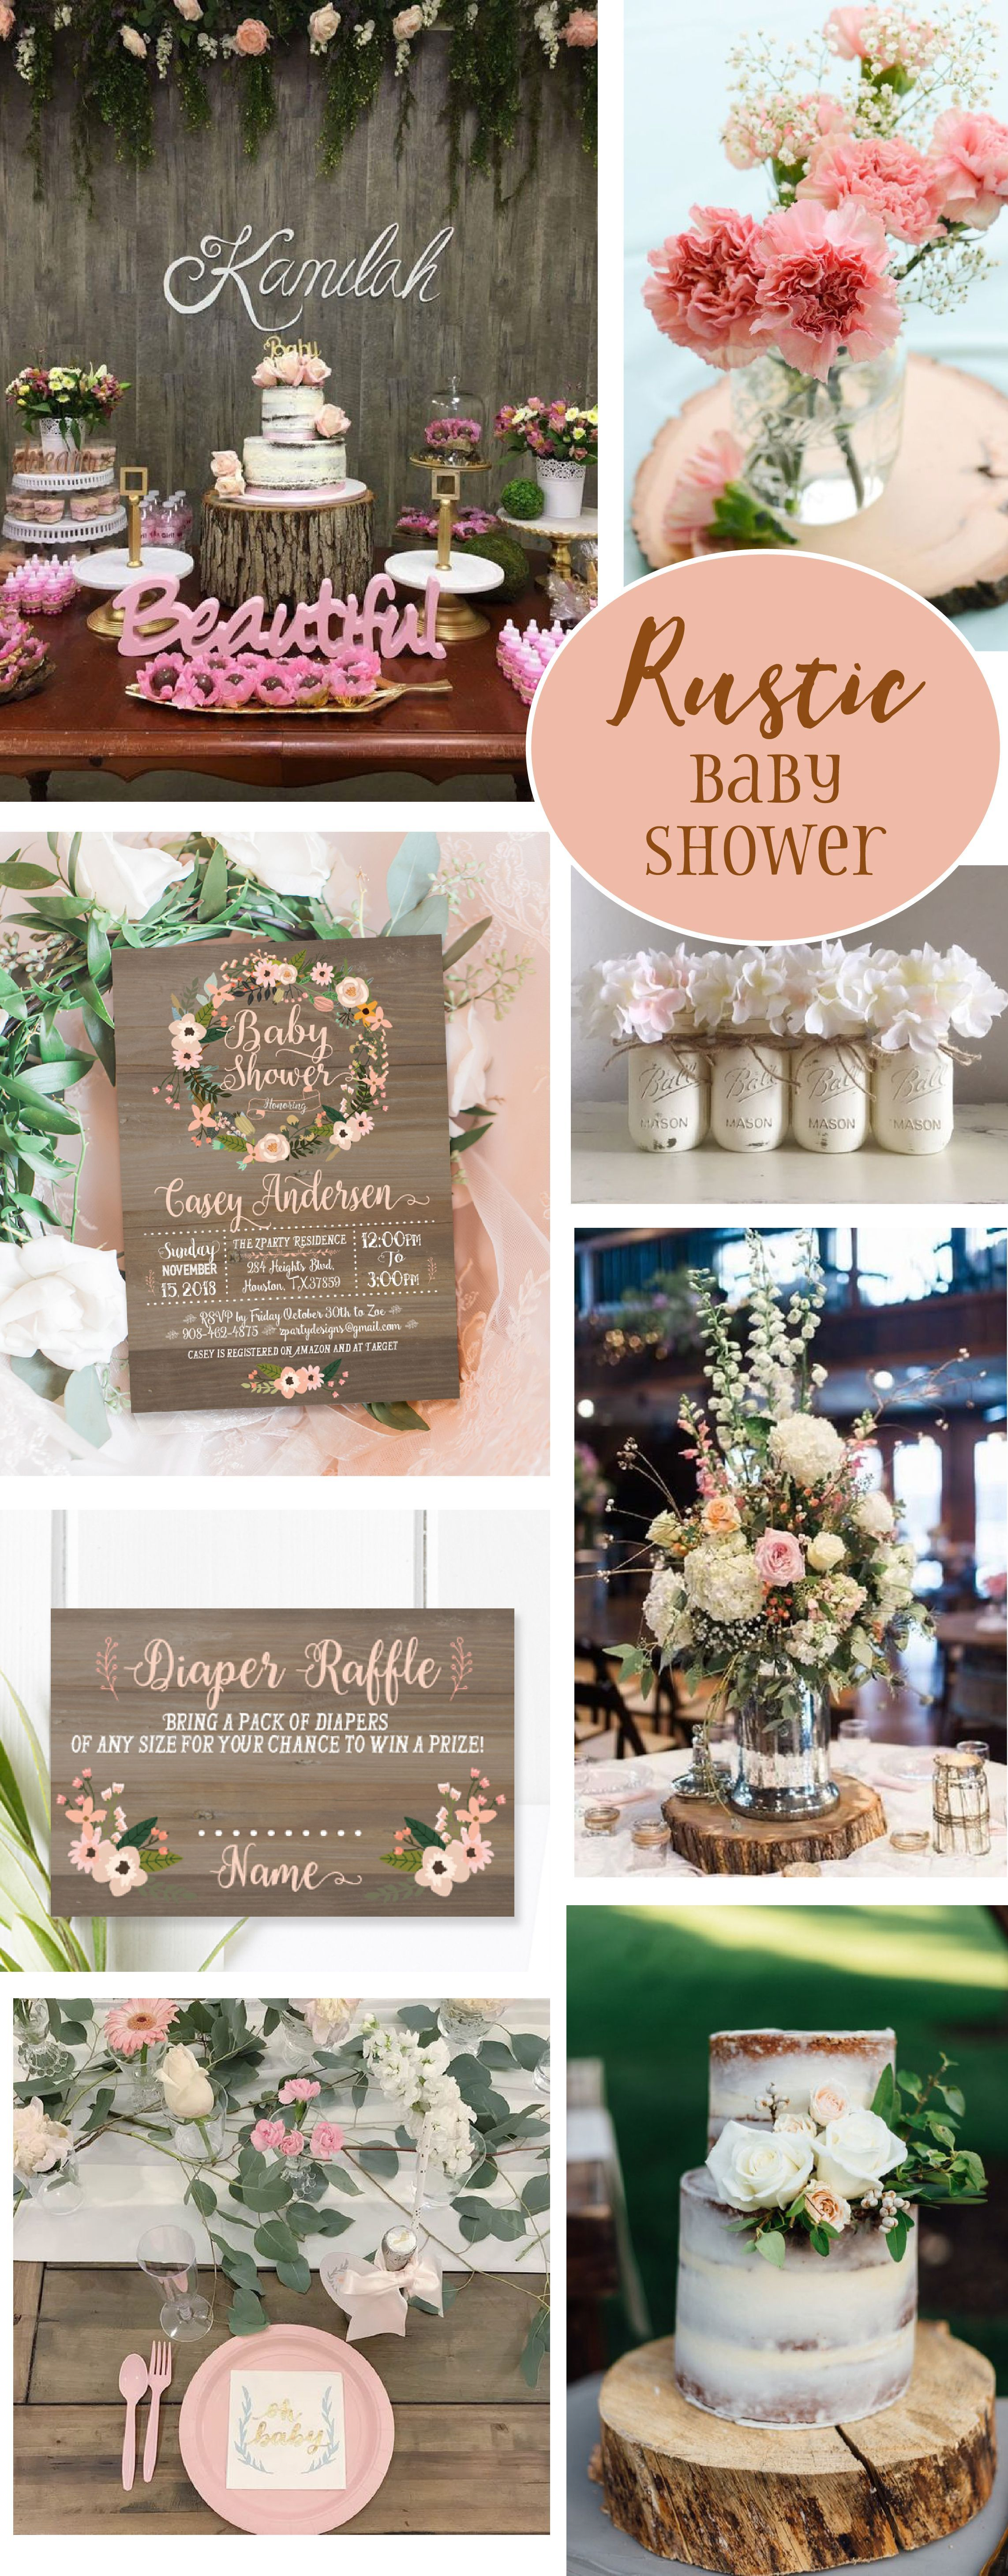 Rustic Baby Shower With Vintage Wood Coral And Pink Flowers And Fall Colors Featuring Decoration Id Baby Shower Flowers Floral Baby Shower Rustic Baby Shower